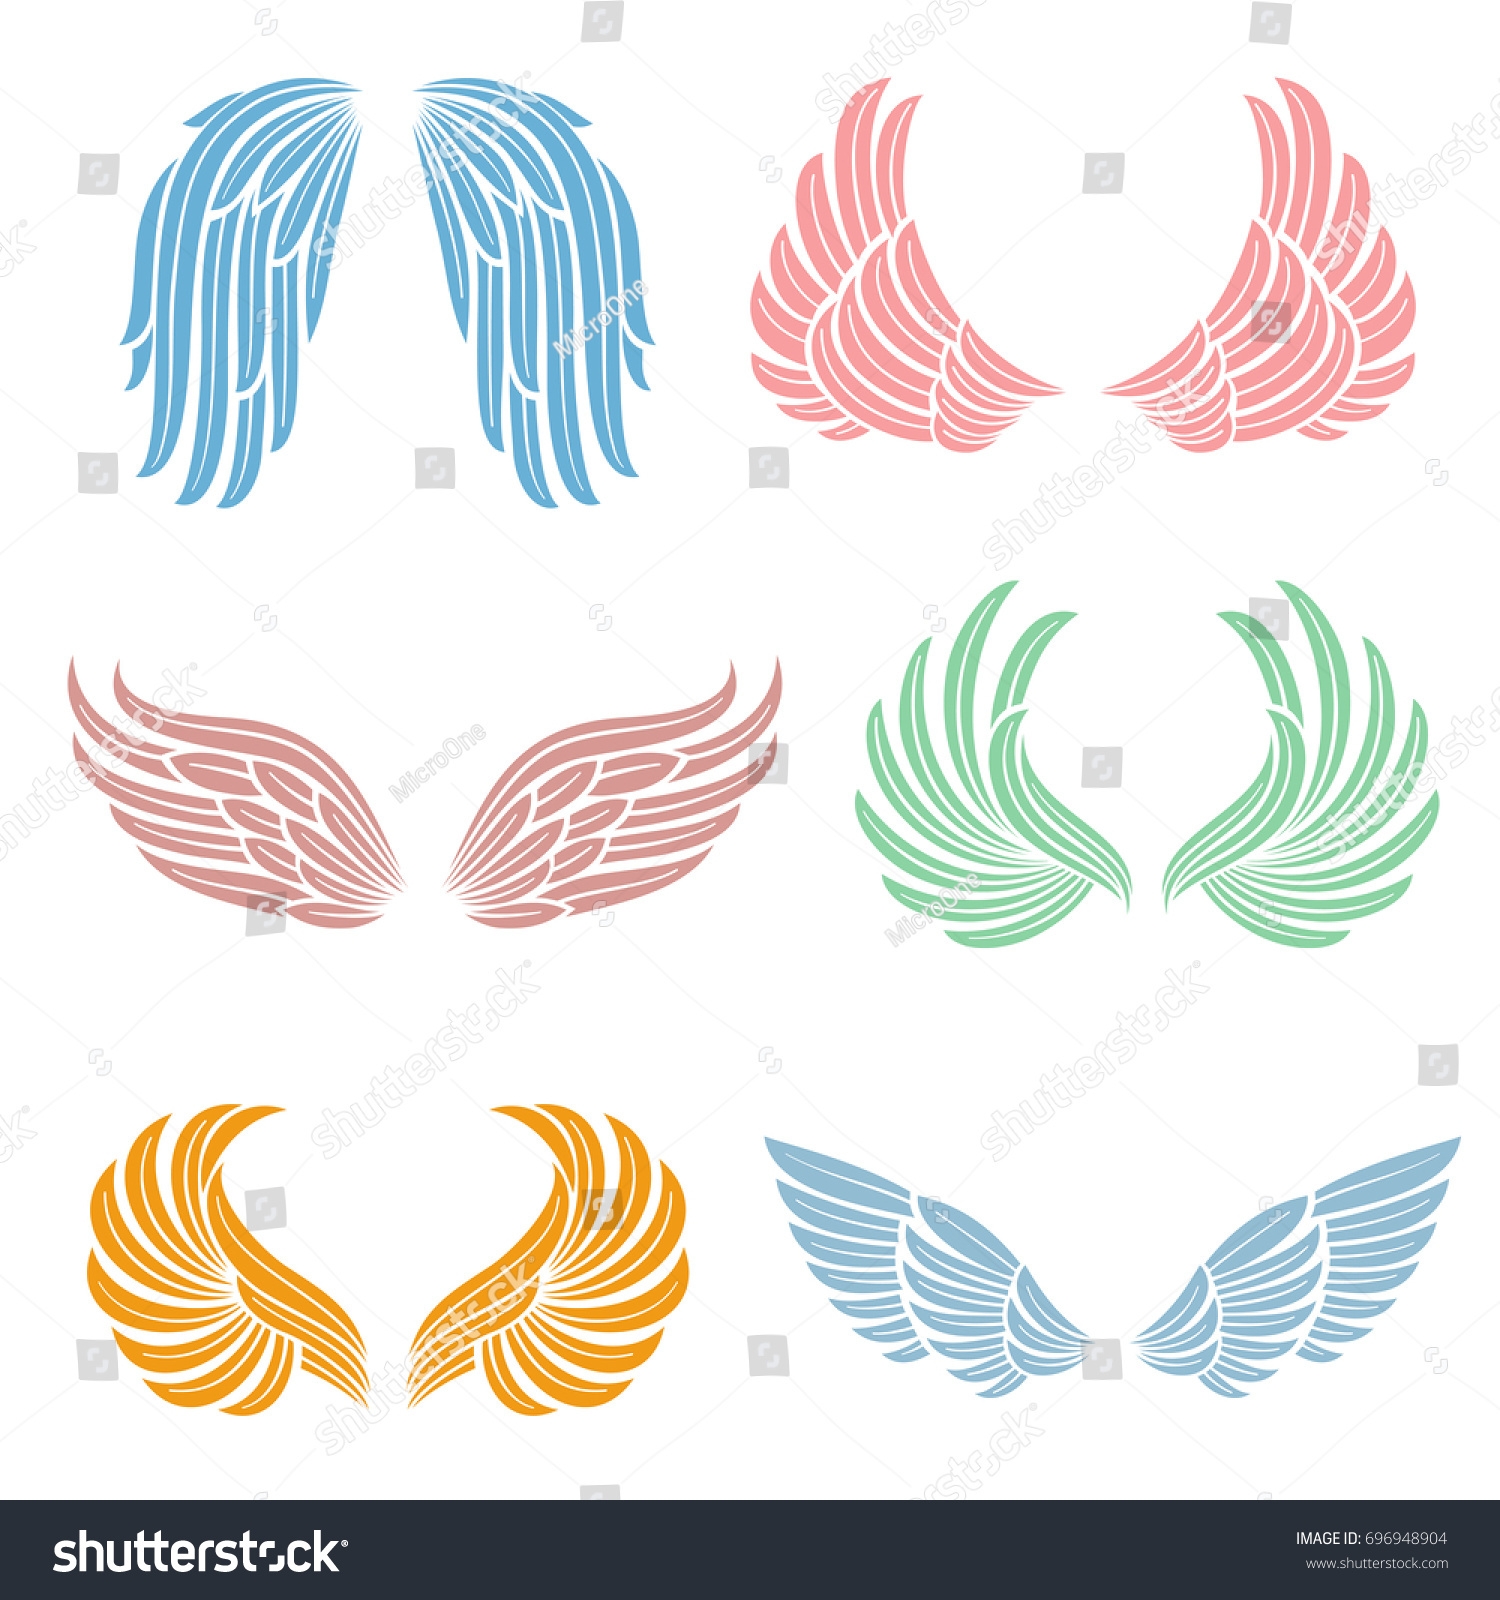 Elegant angel wings long feather angelic stock vector 696948904 elegant angel wings with long feather angelic symbols isolated vector set color angel wing biocorpaavc